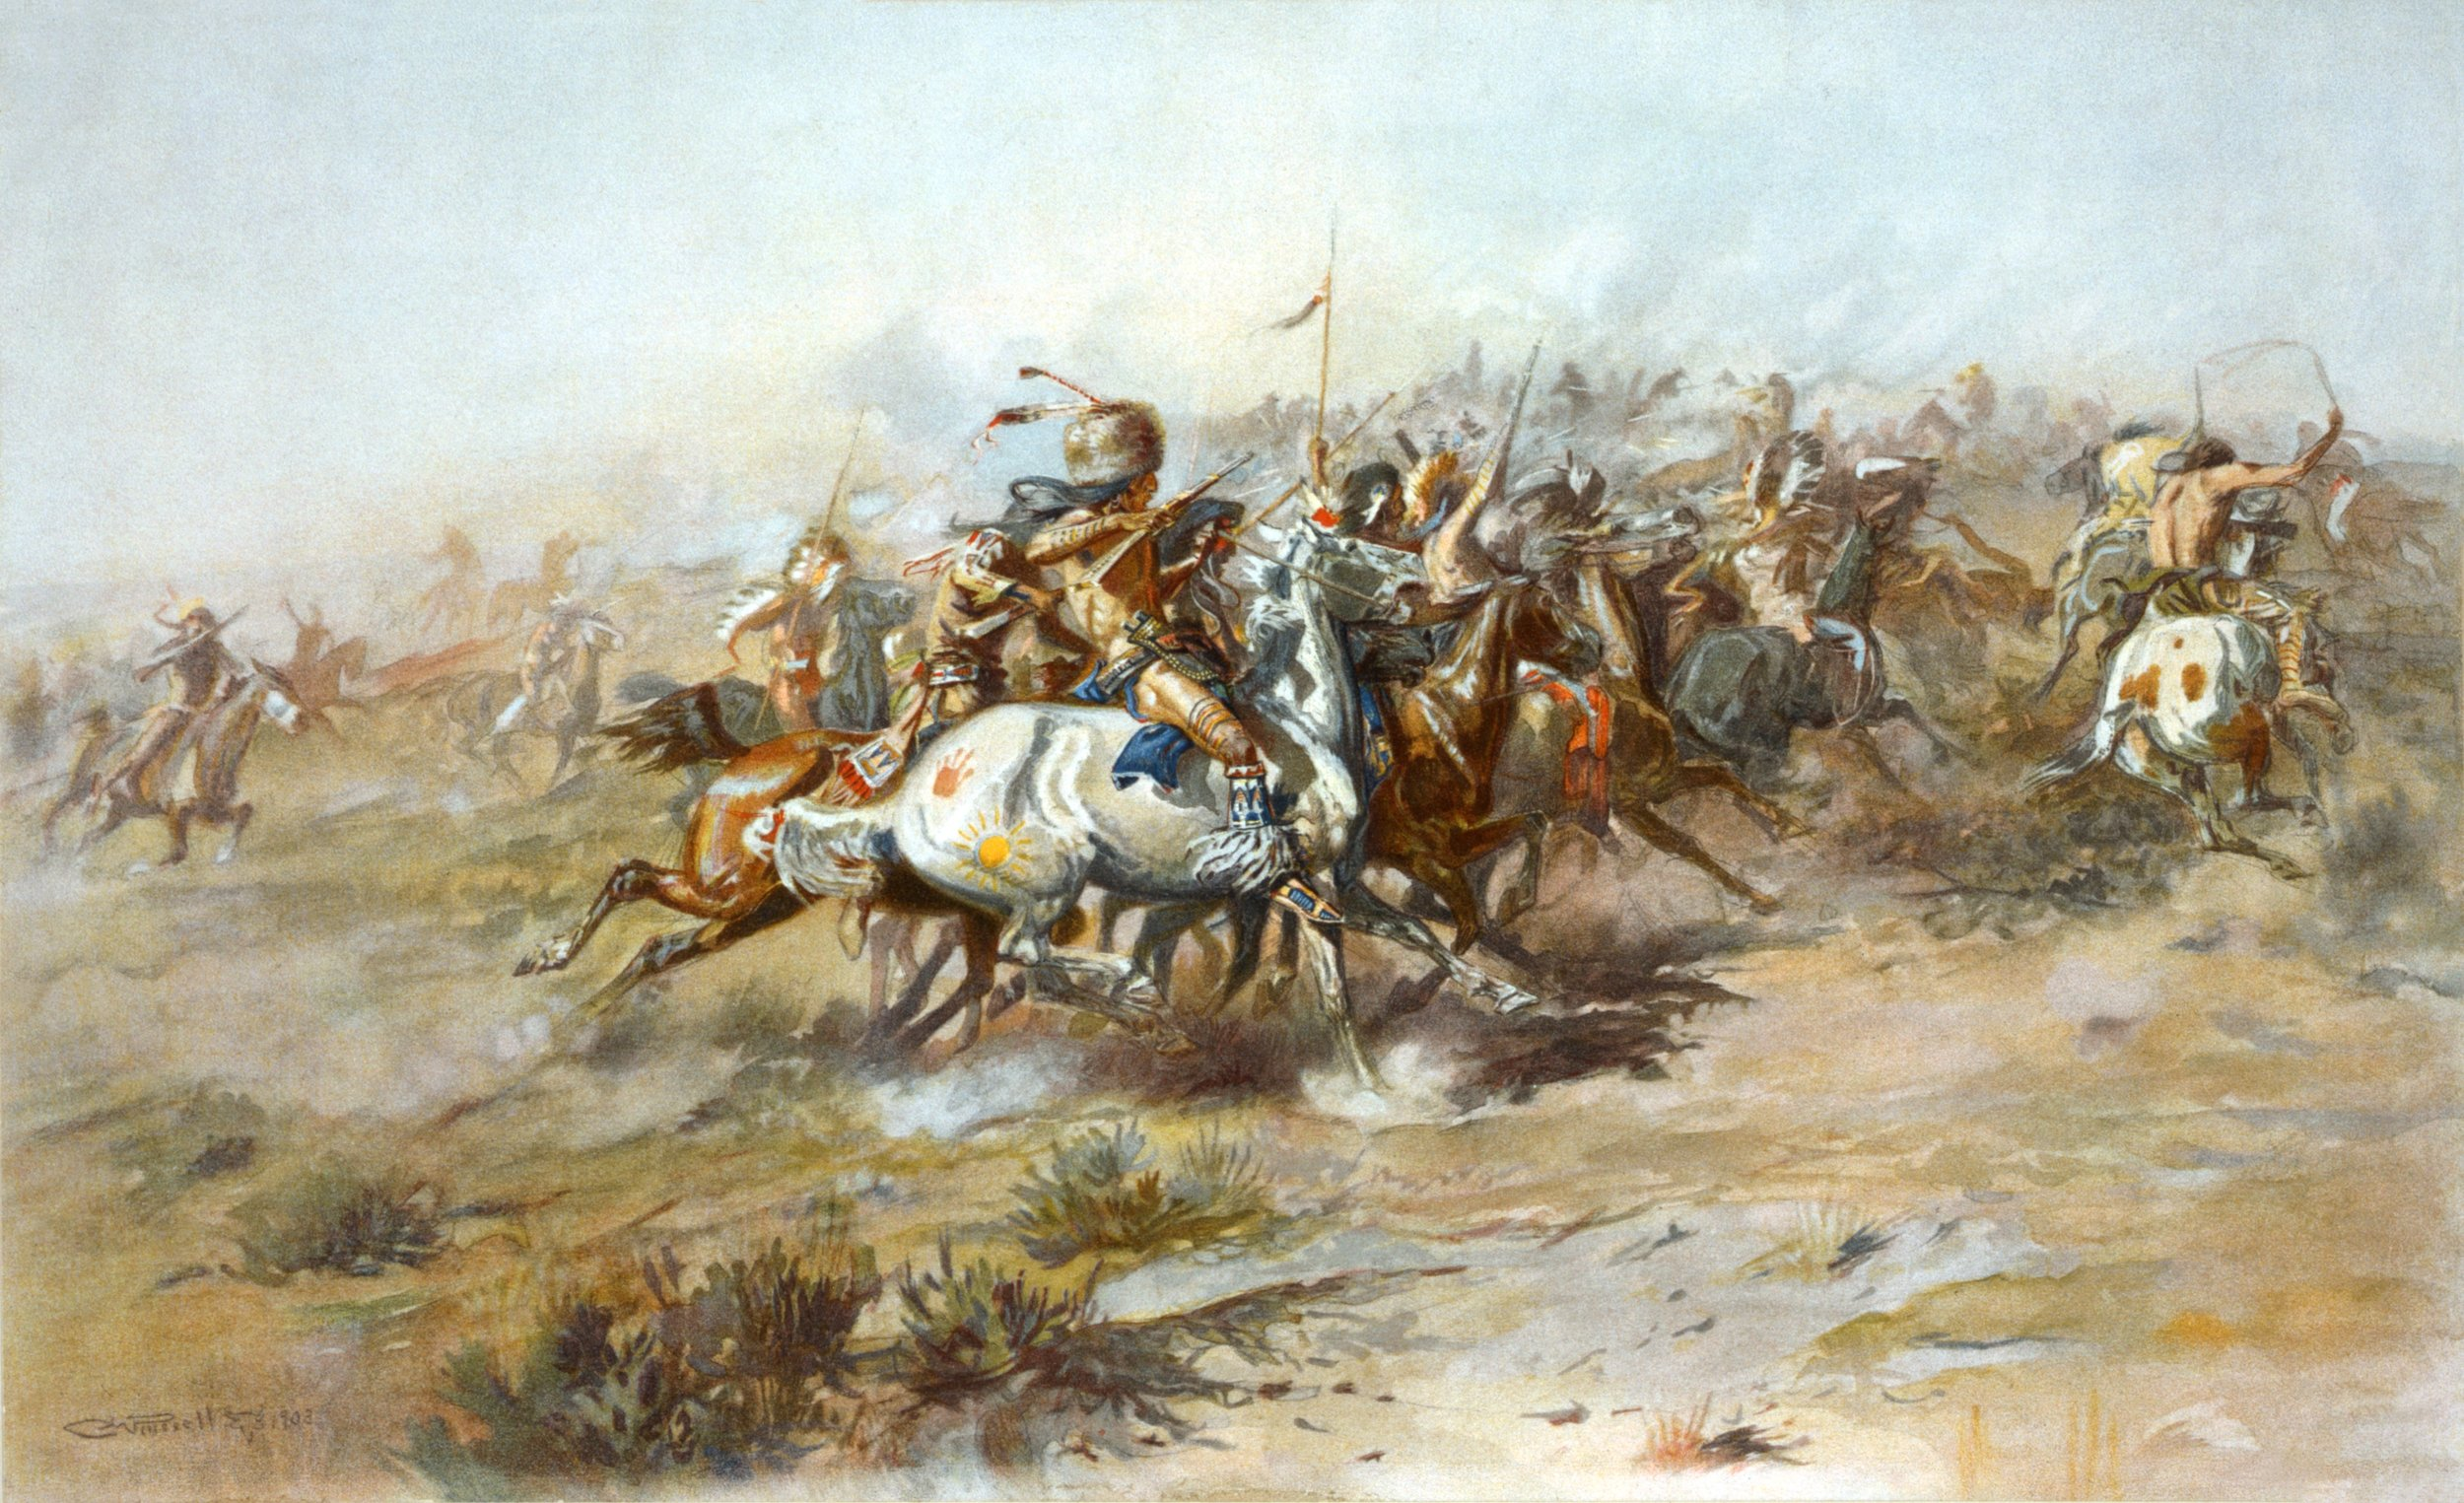 """The Custer Fight"" by Charles Marion Russell. (Public Domain)"